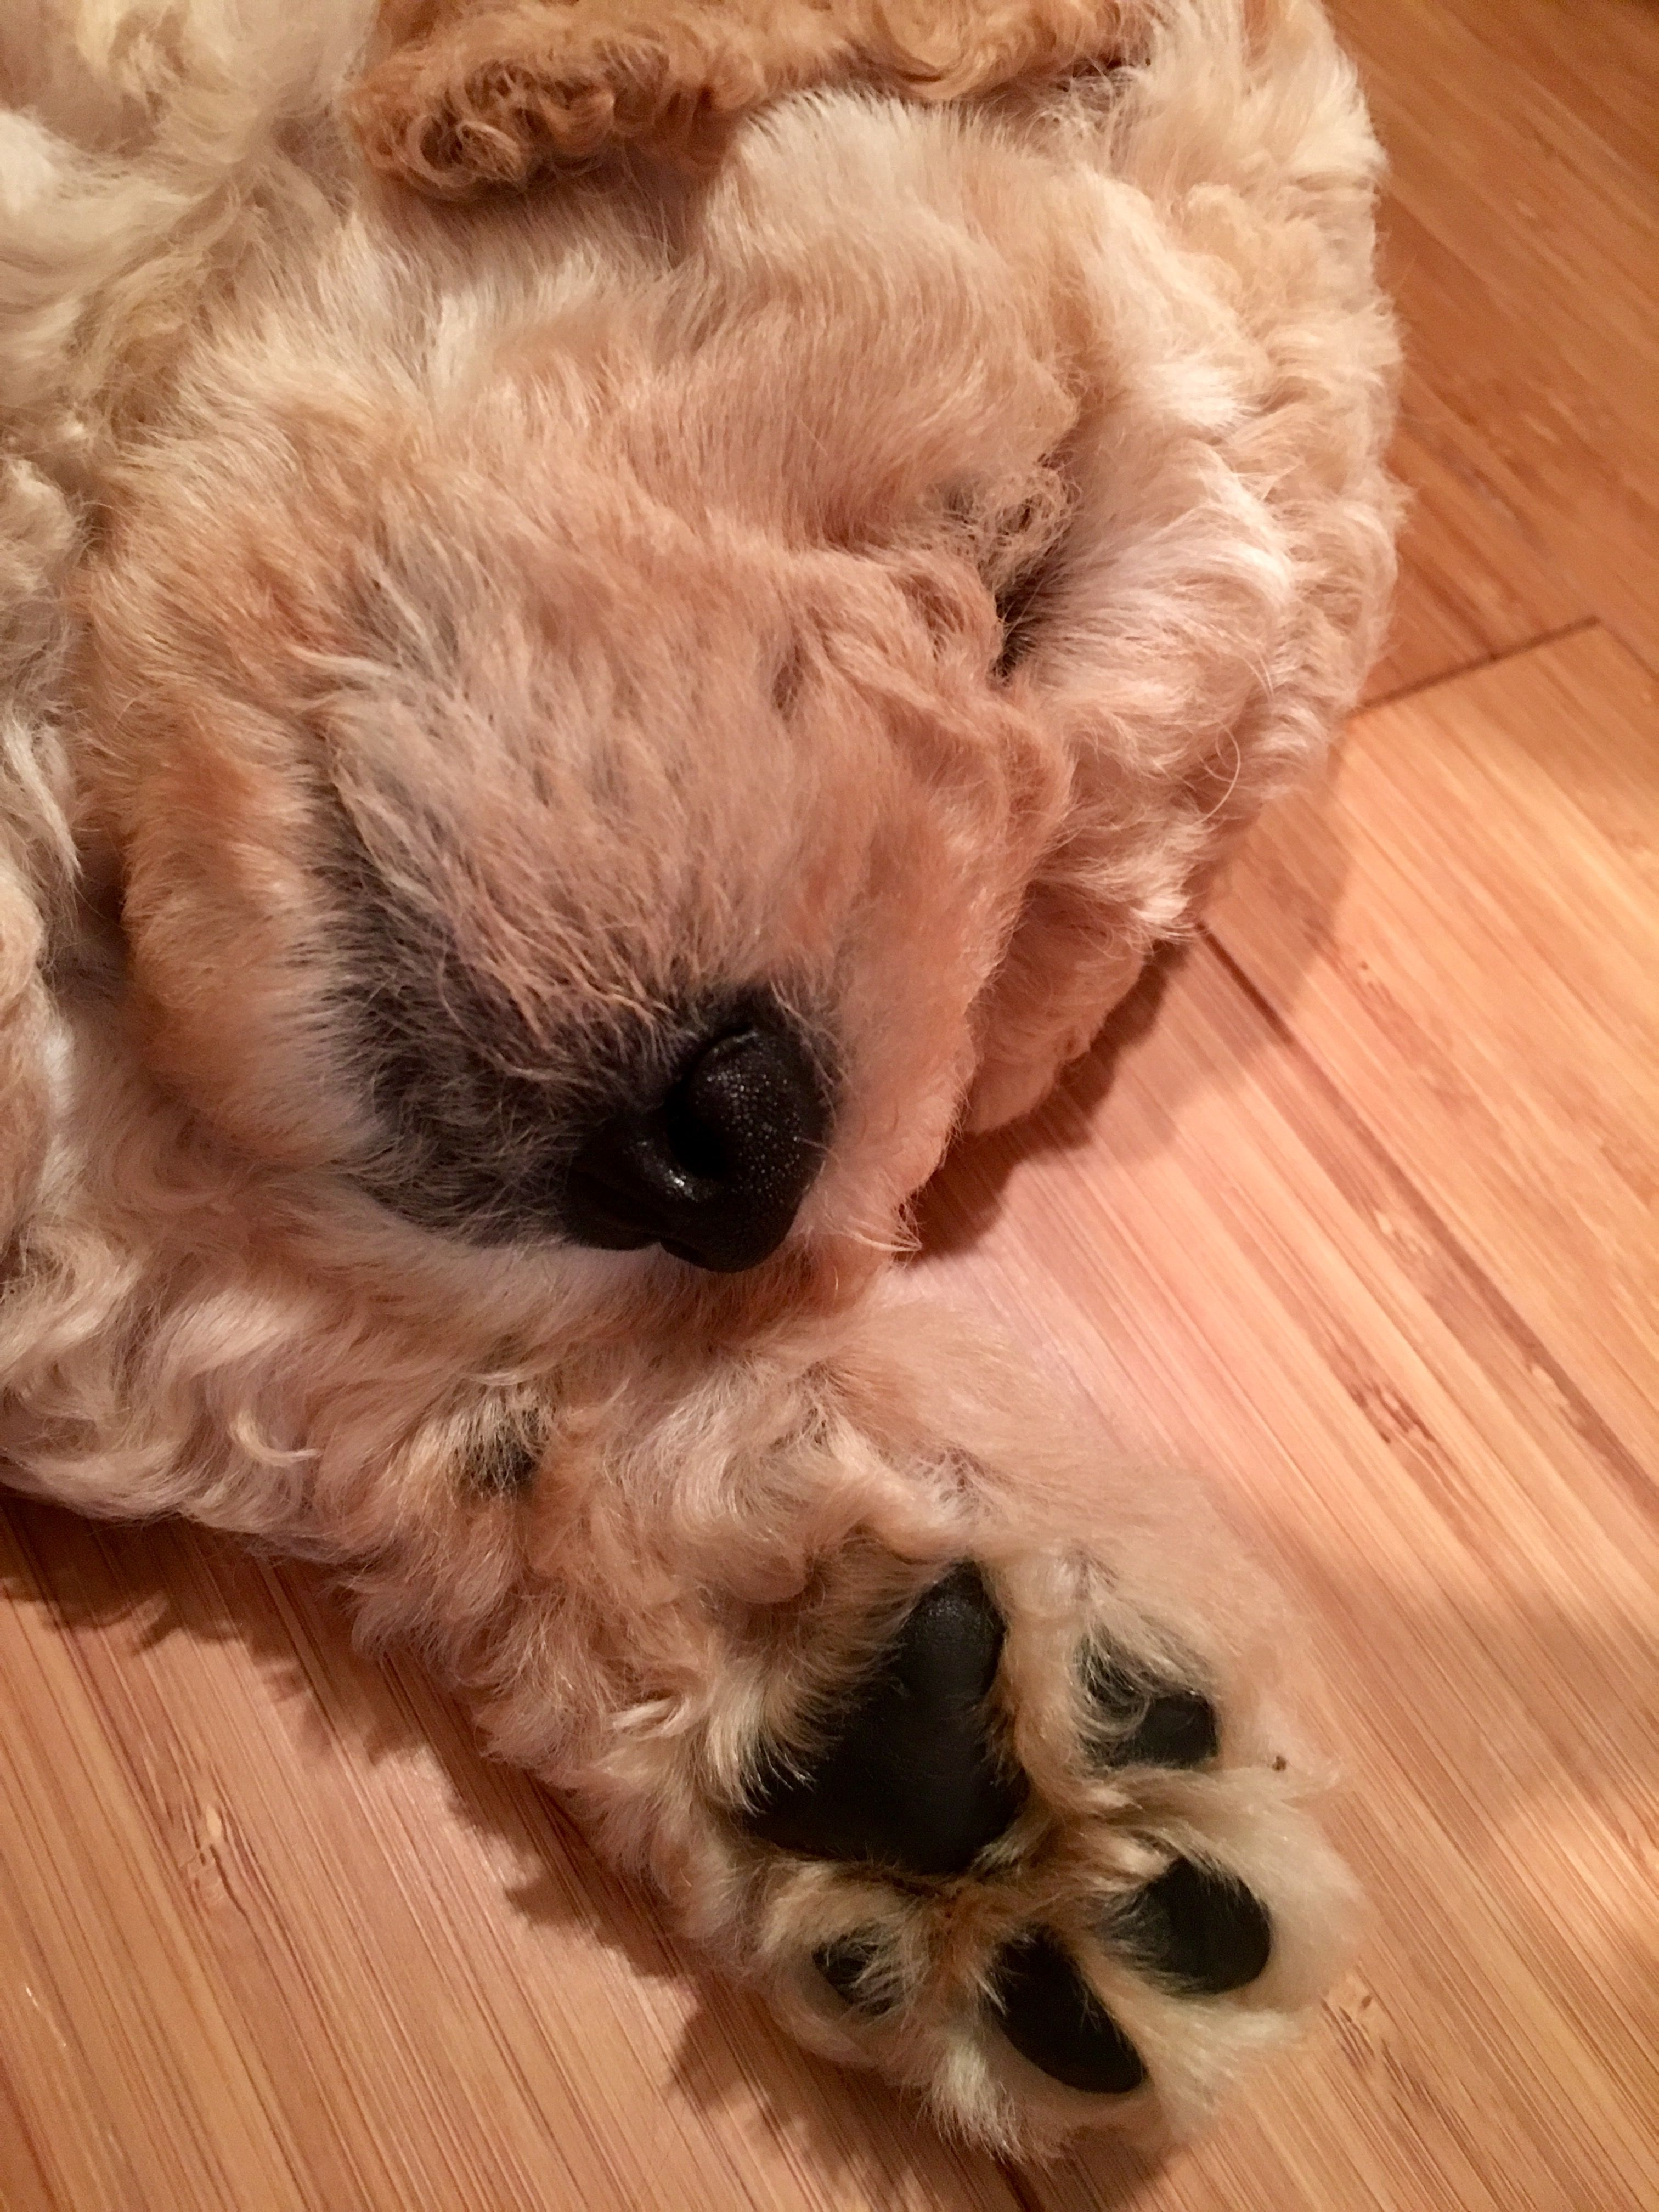 Pin by Malorie Brinkman on Penny the standard poodle